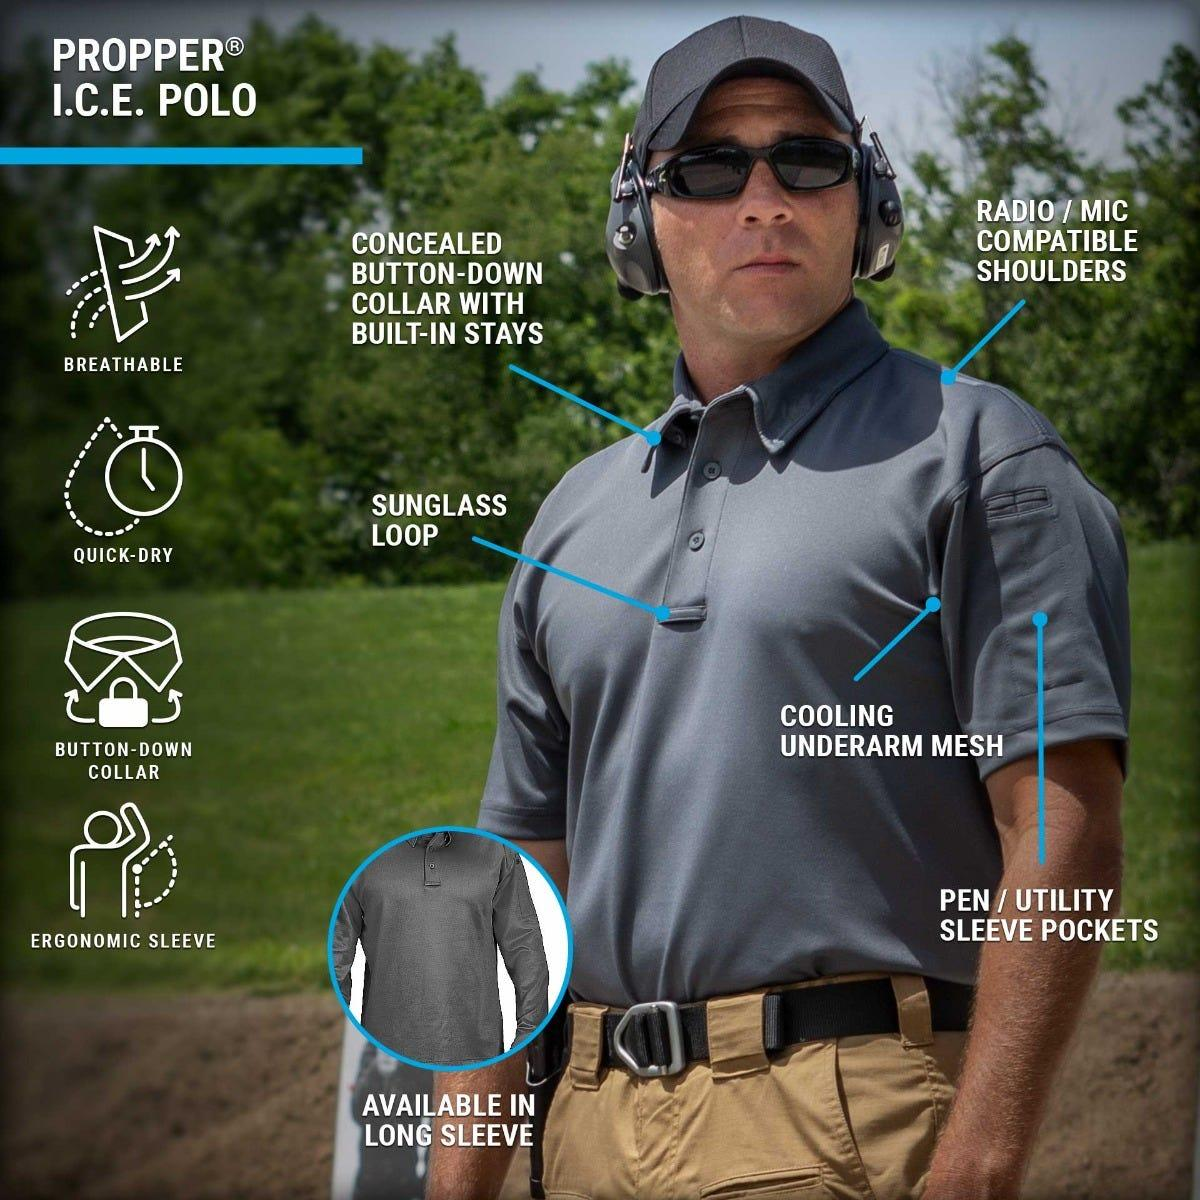 On the range, the ICE polo offers cooling underarms, radio and mic clips breathability for all day performance.